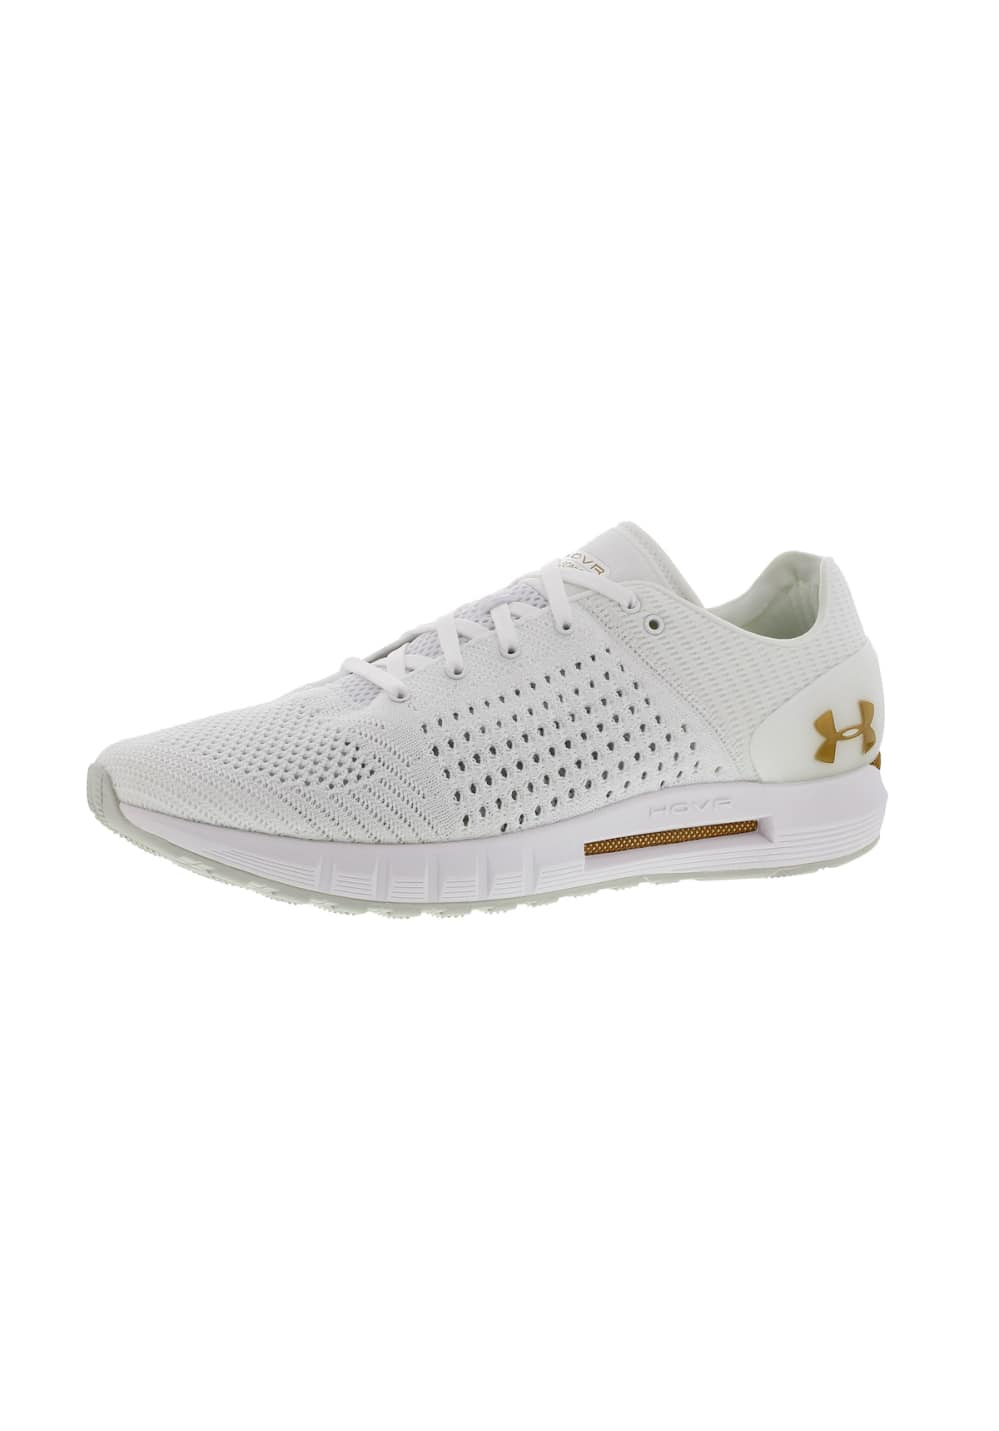 uk availability 30672 78fe9 Under Armour Hovr Sonic Nc - Running shoes for Men - White